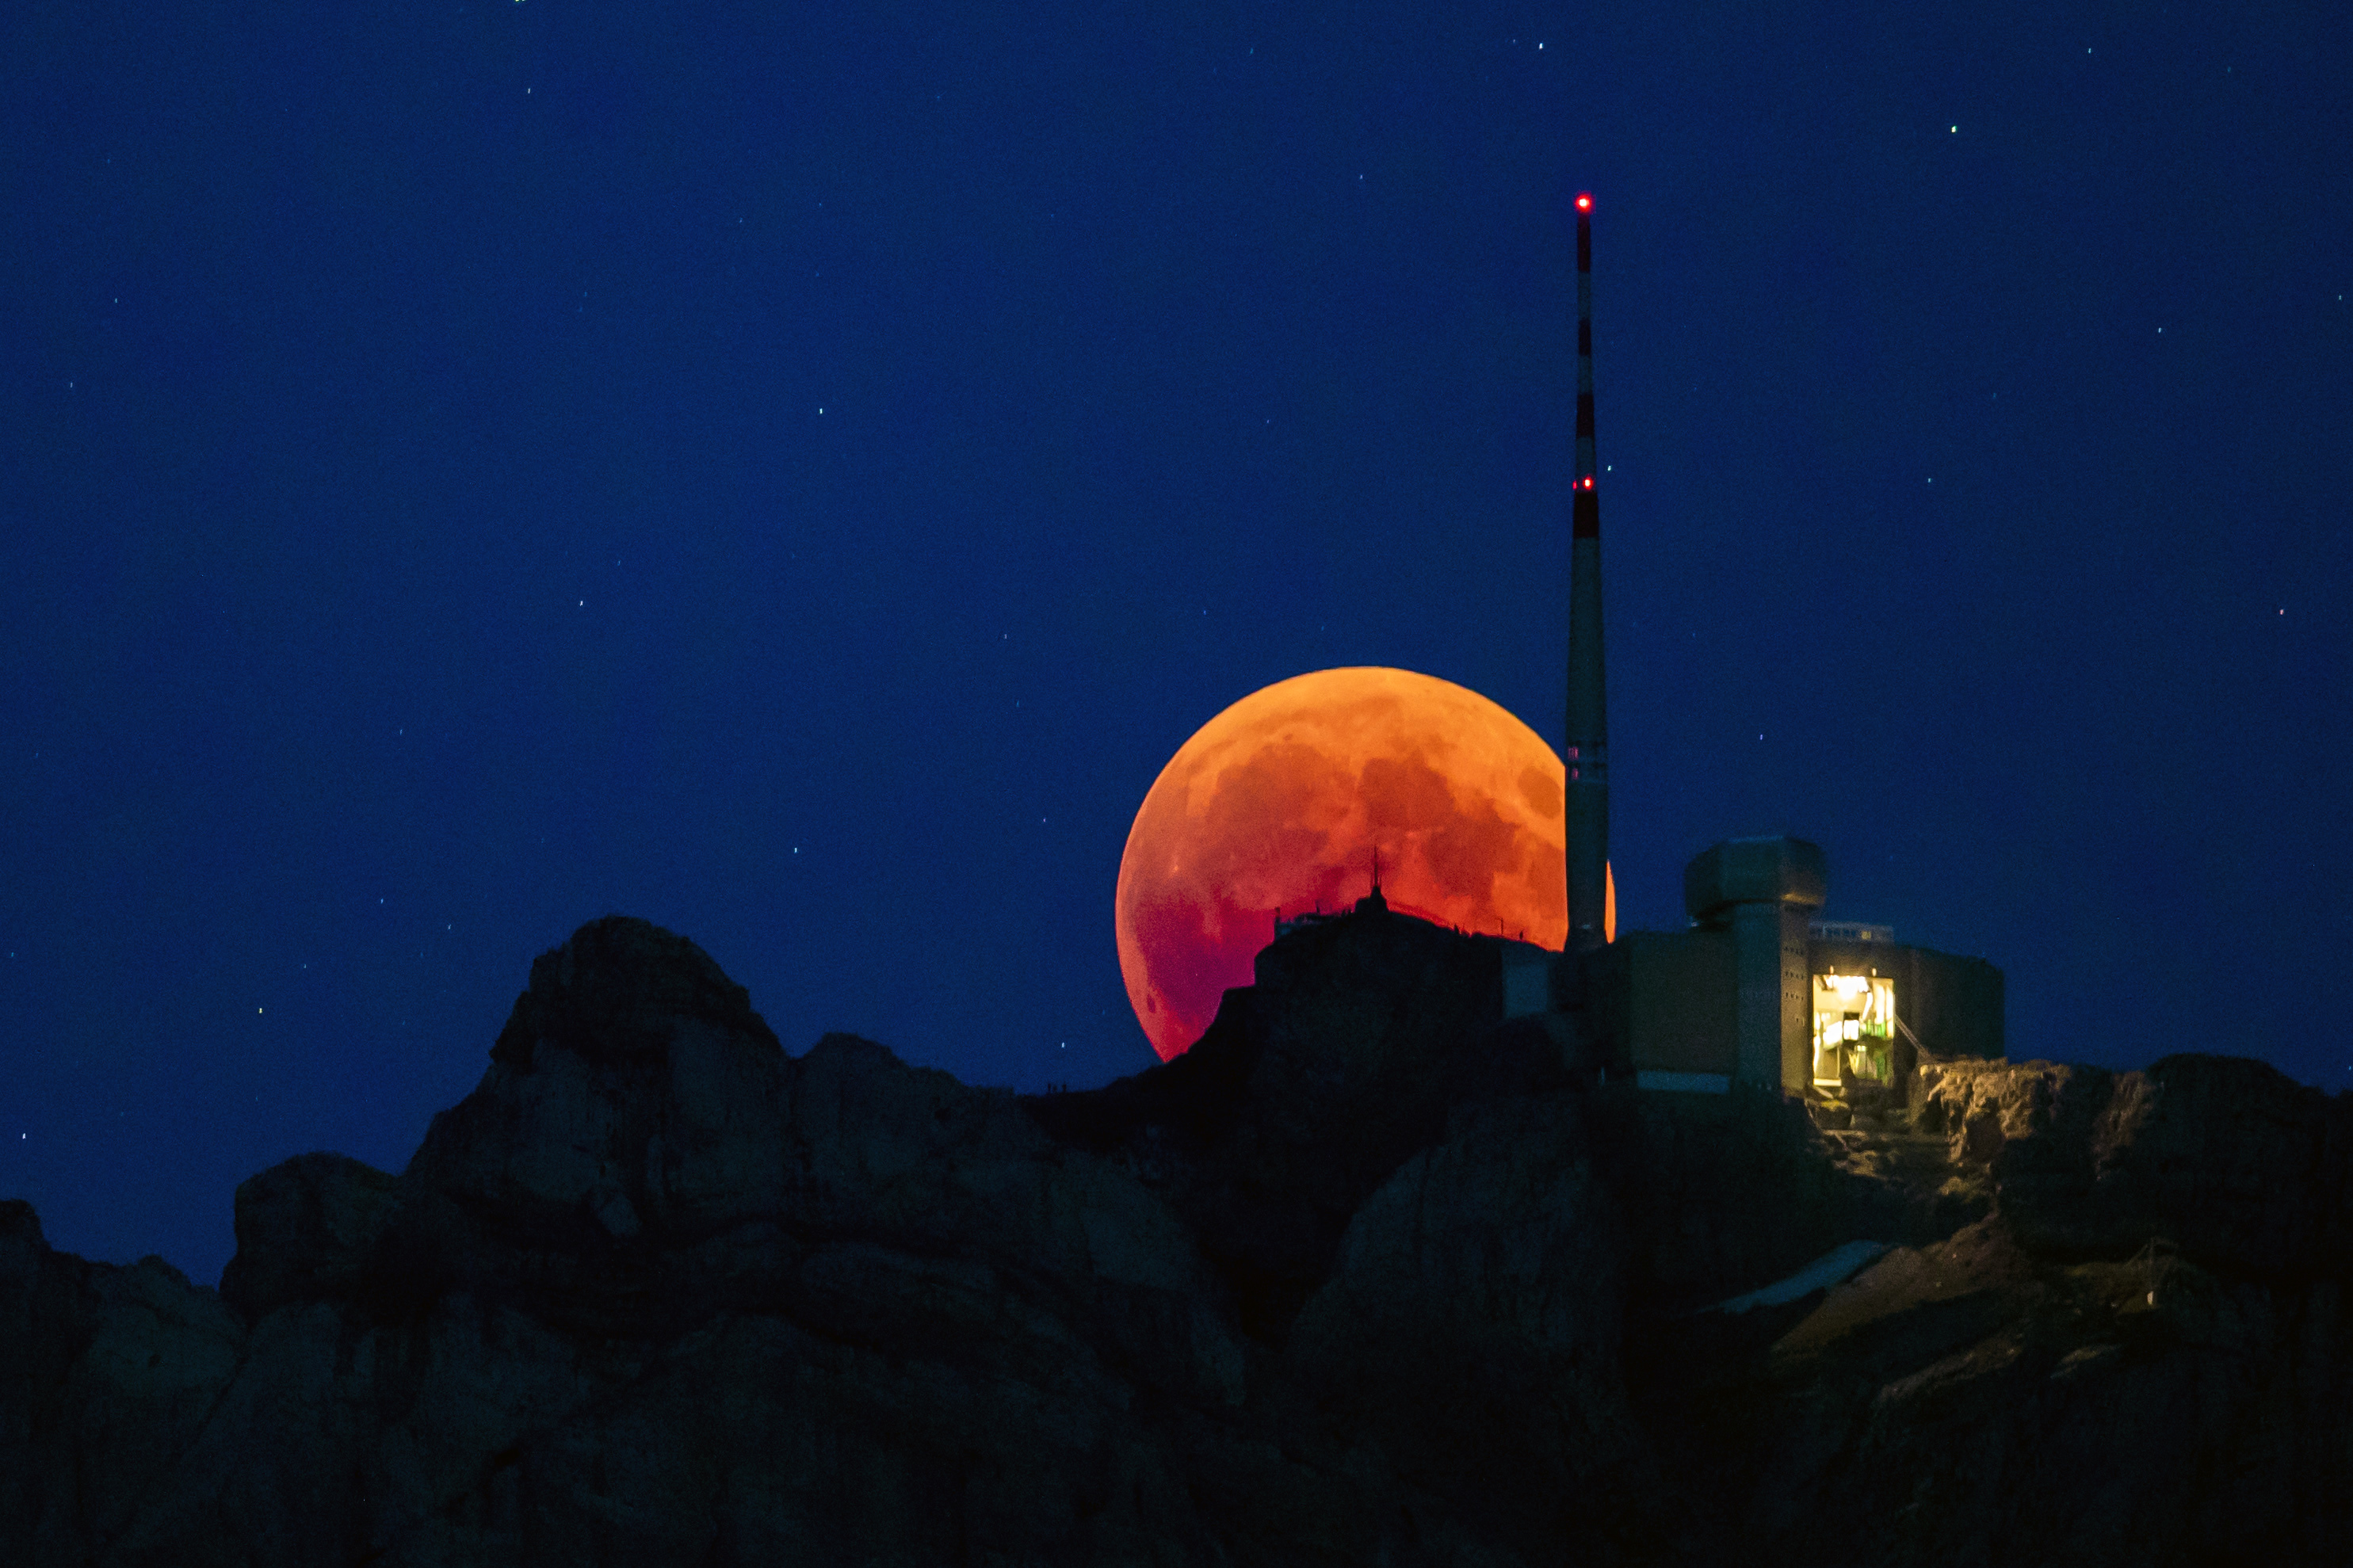 The moon turns red during a total lunar eclipse in Switzerland